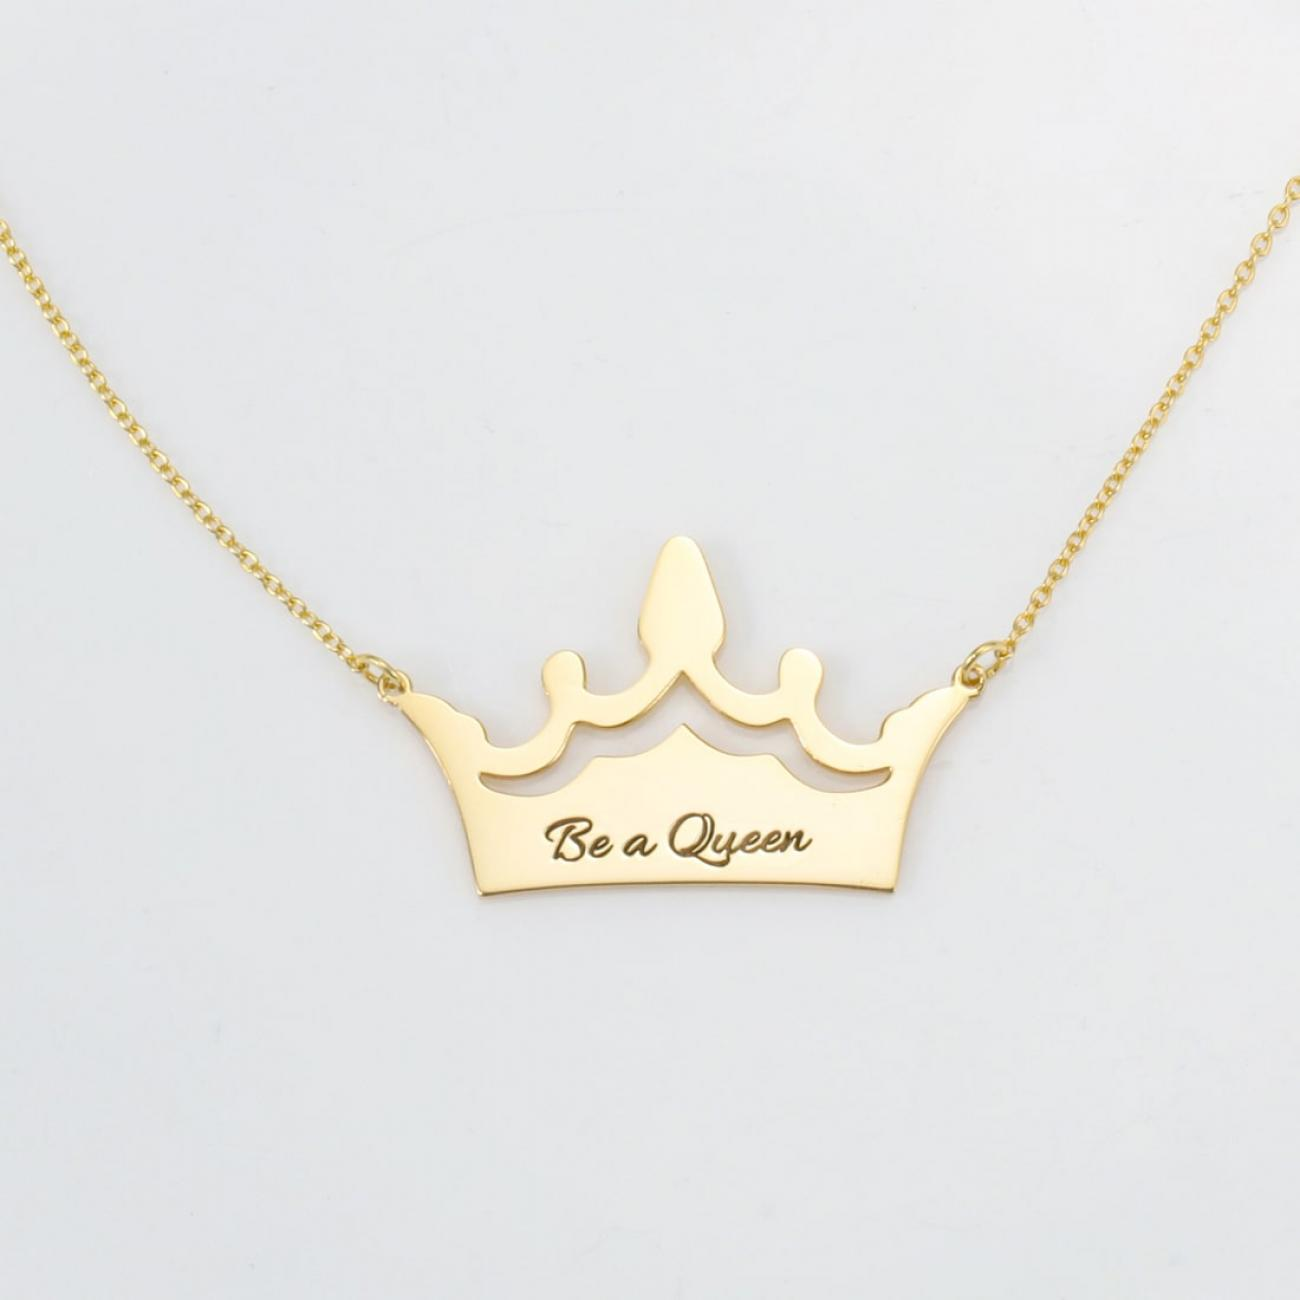 Queen necklace with engraving